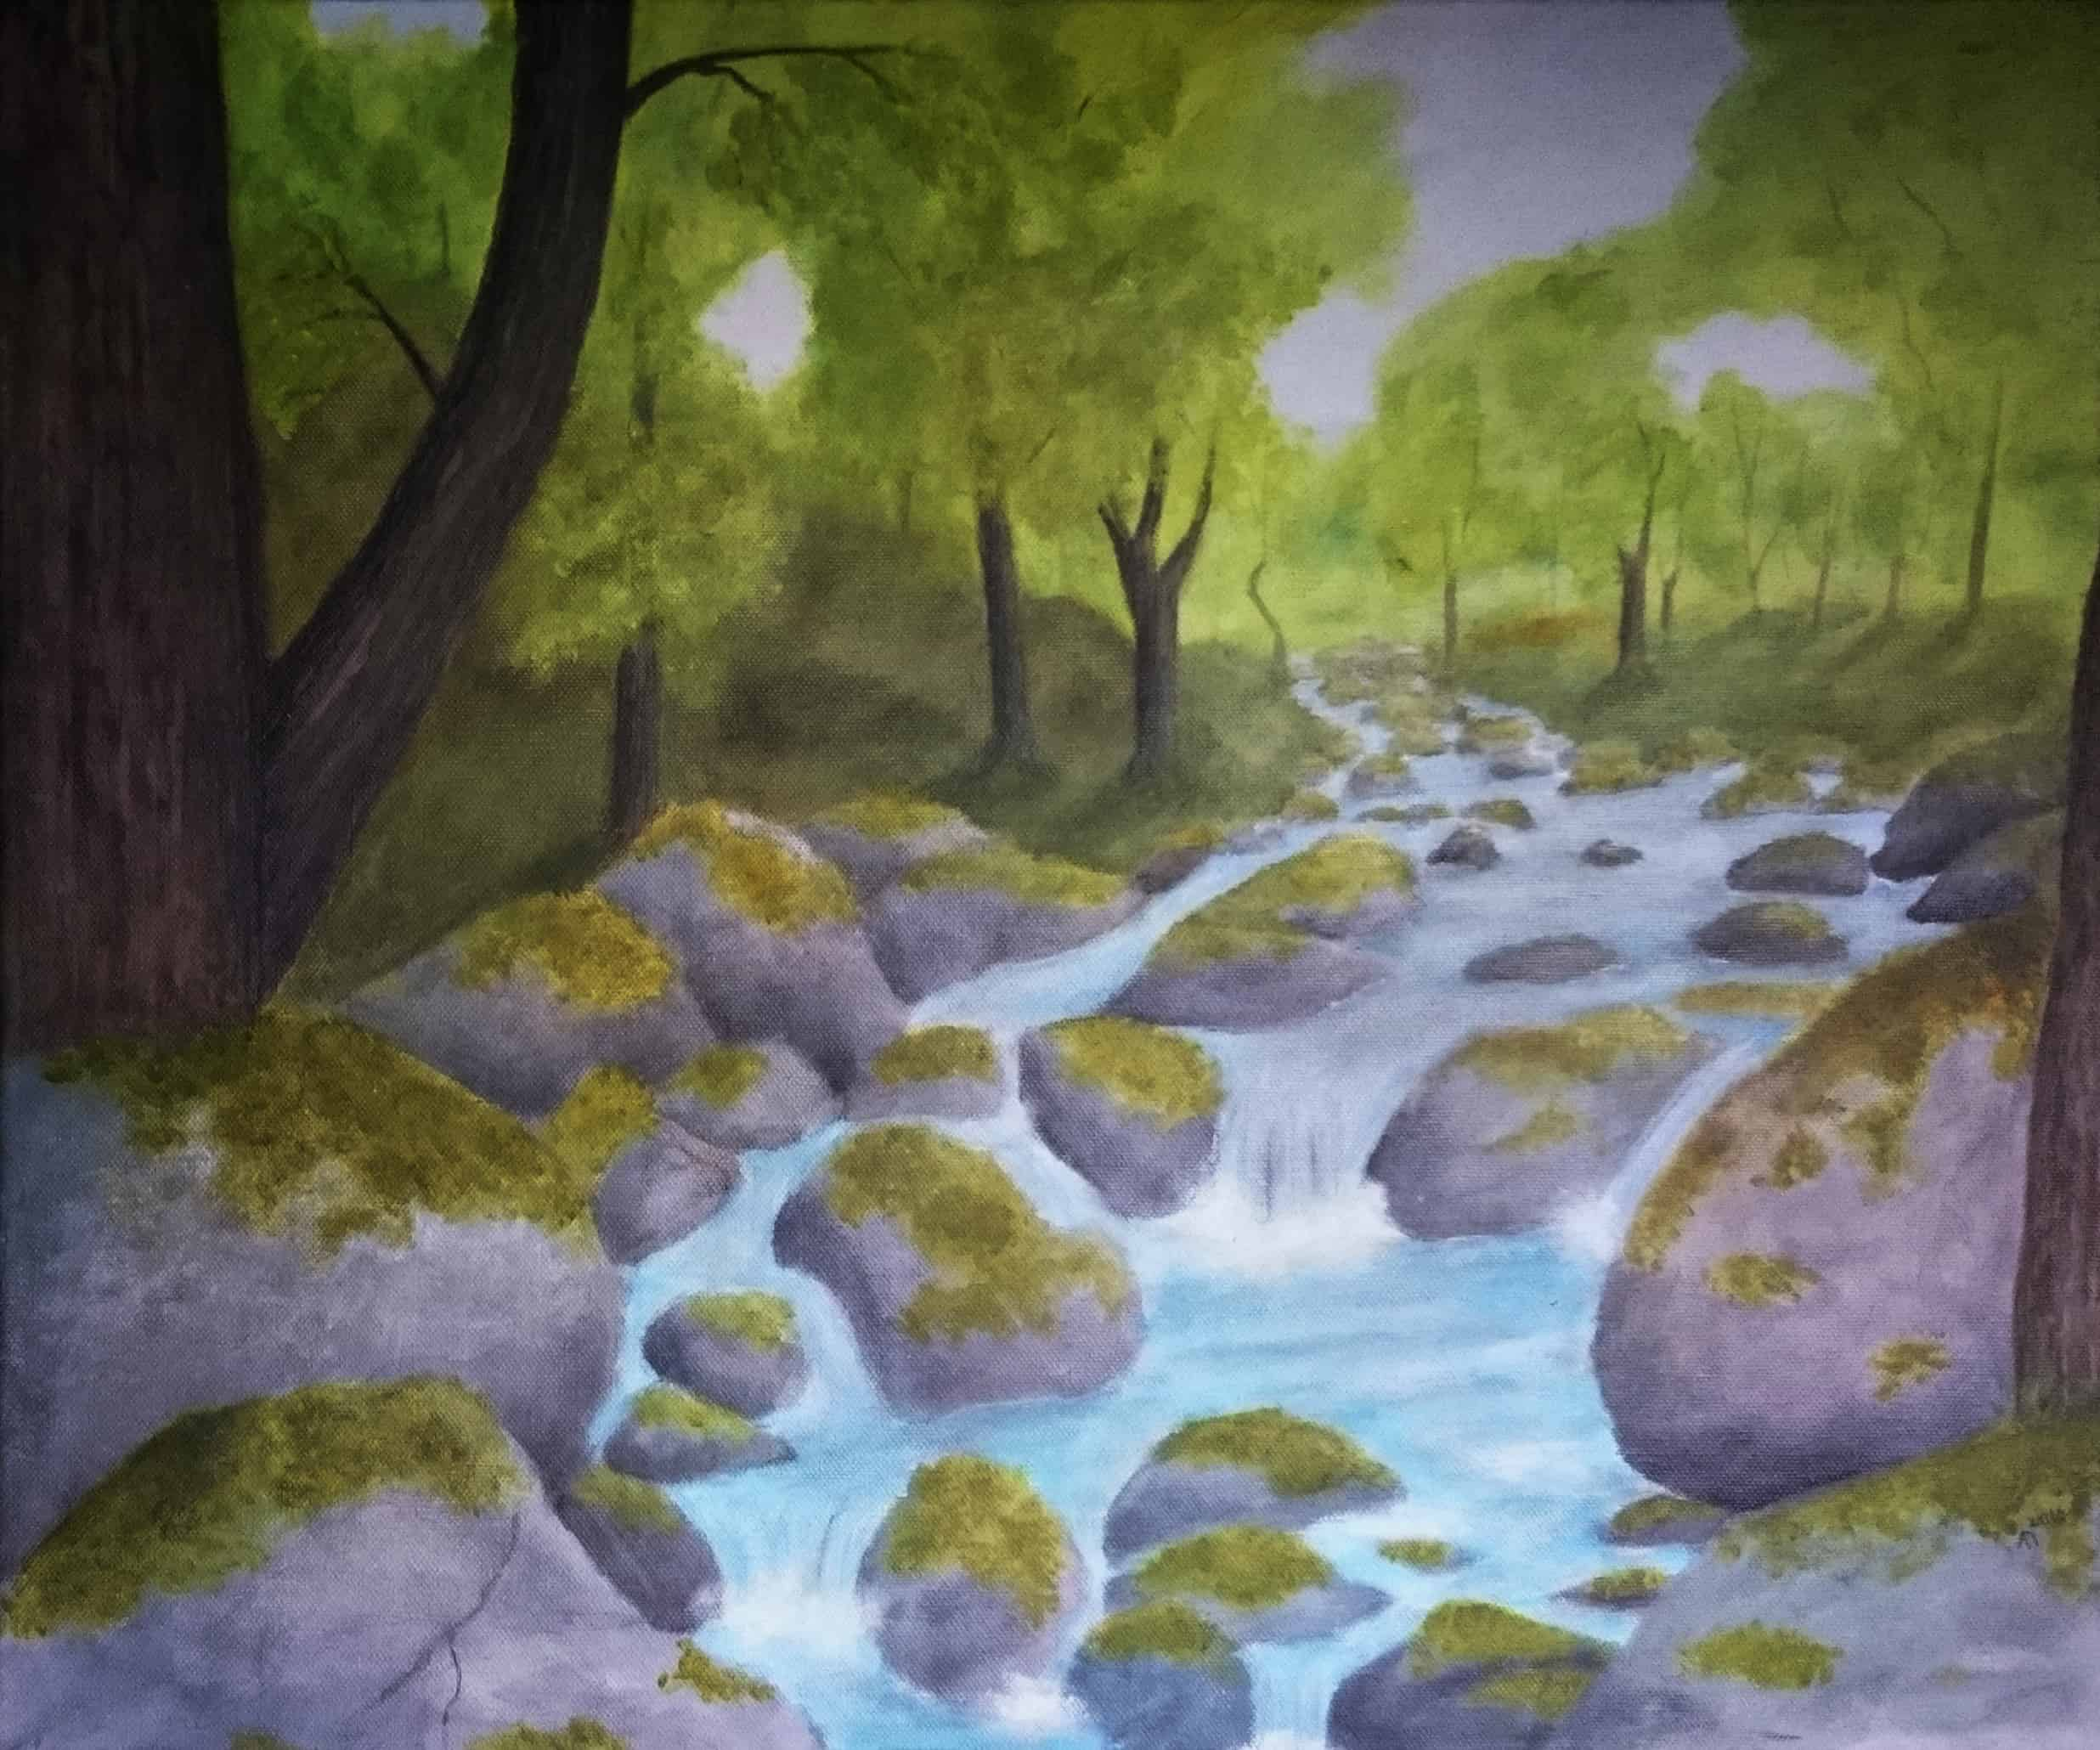 Alfheim - Mythological landscape in acrylics by Linda Ursin